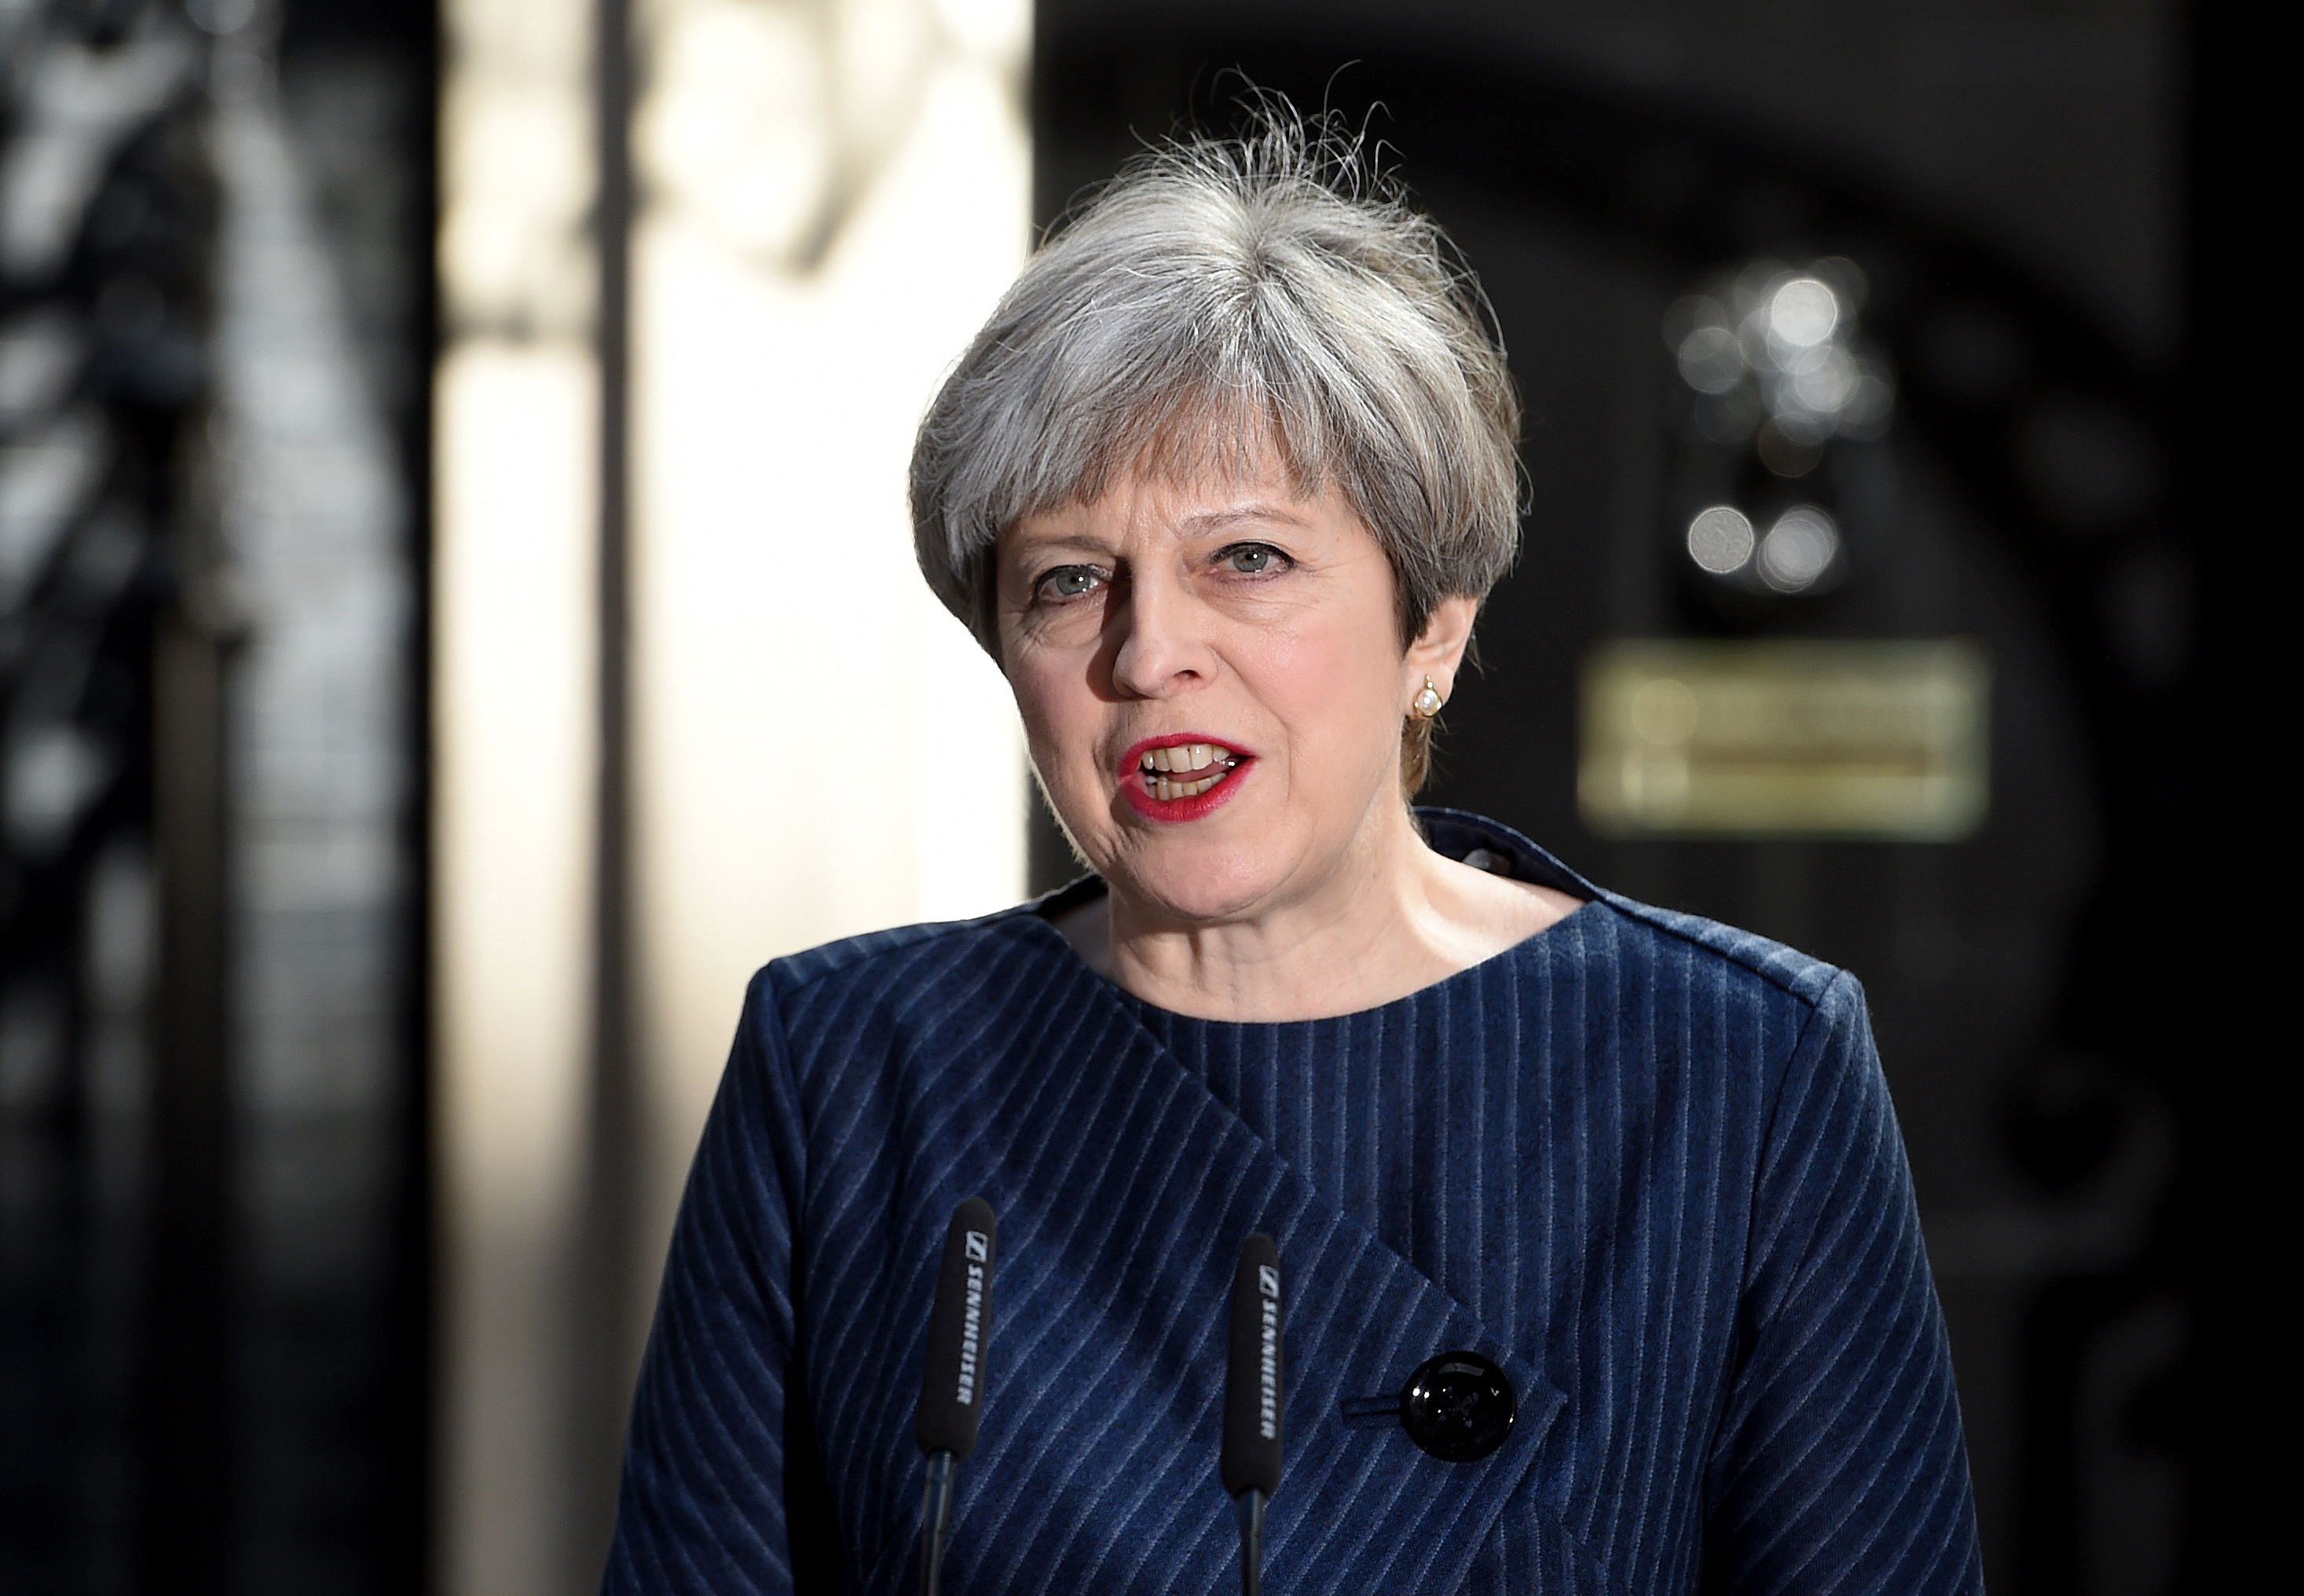 Uk muslims press for peace at 10 downing street - Ramadan Message From Prime Minister Theresa May